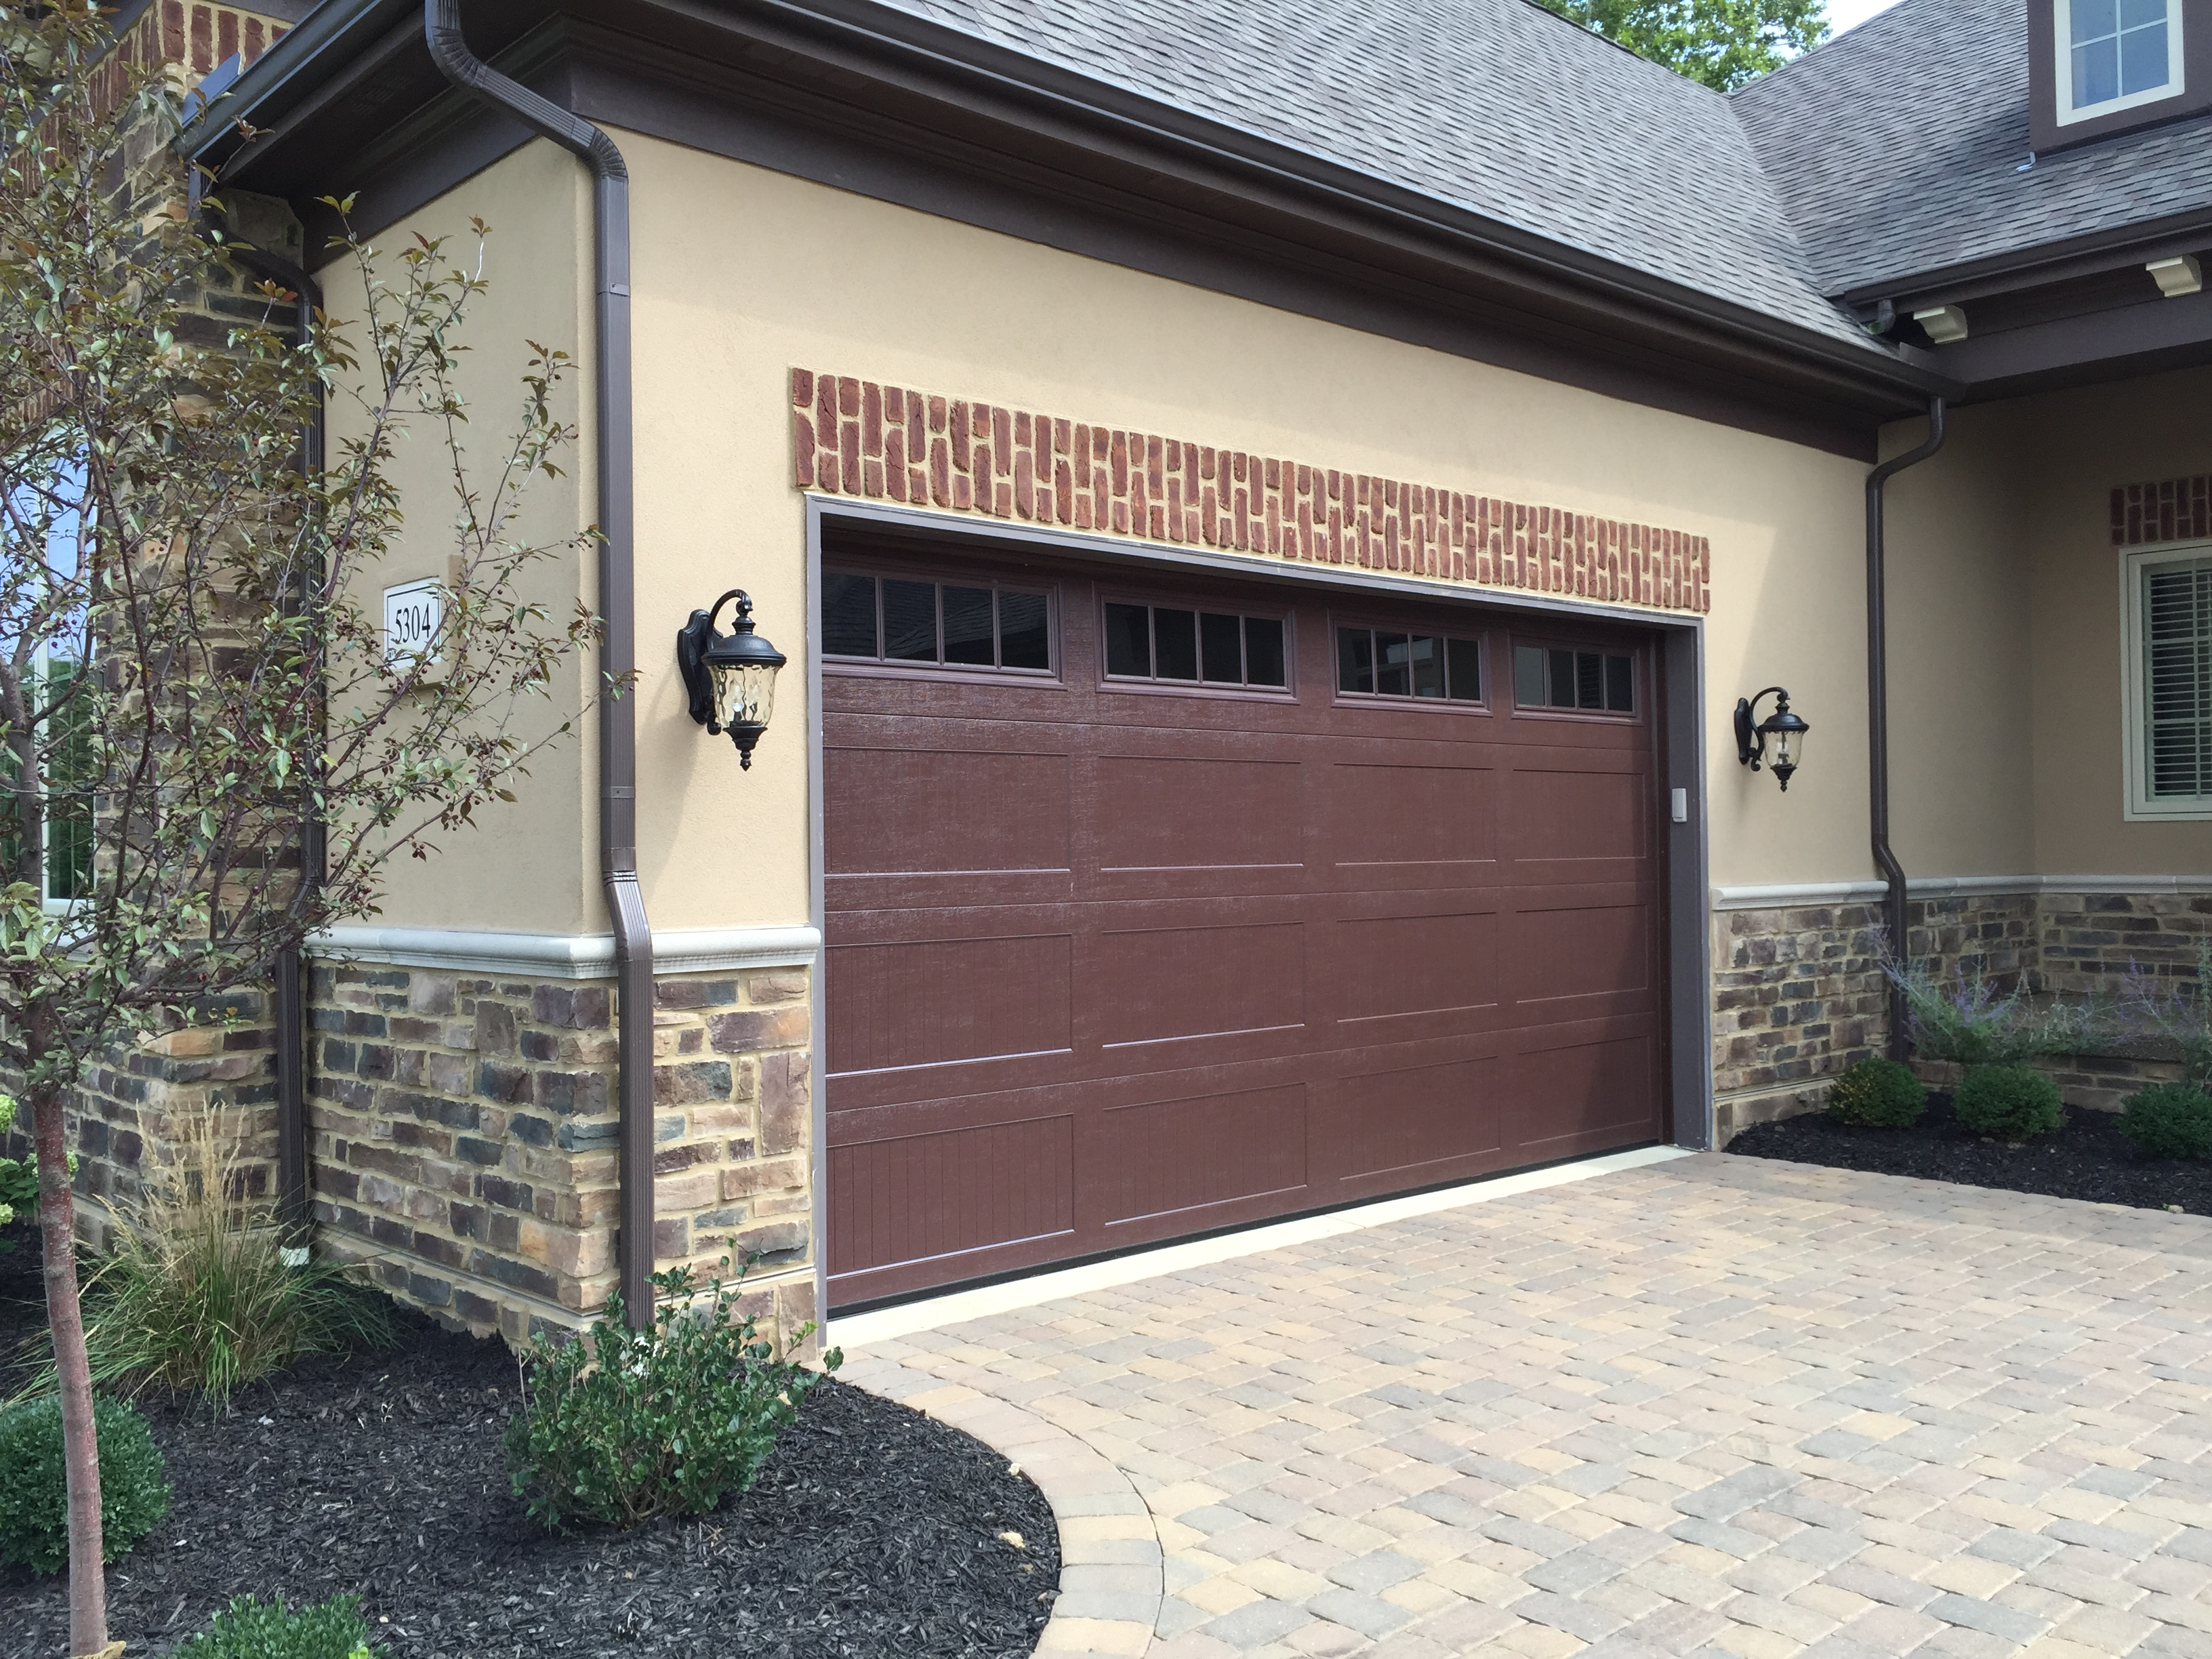 664brown 4p & Gallery of Garage Doors | Nofziger Doors (614) 873-3905